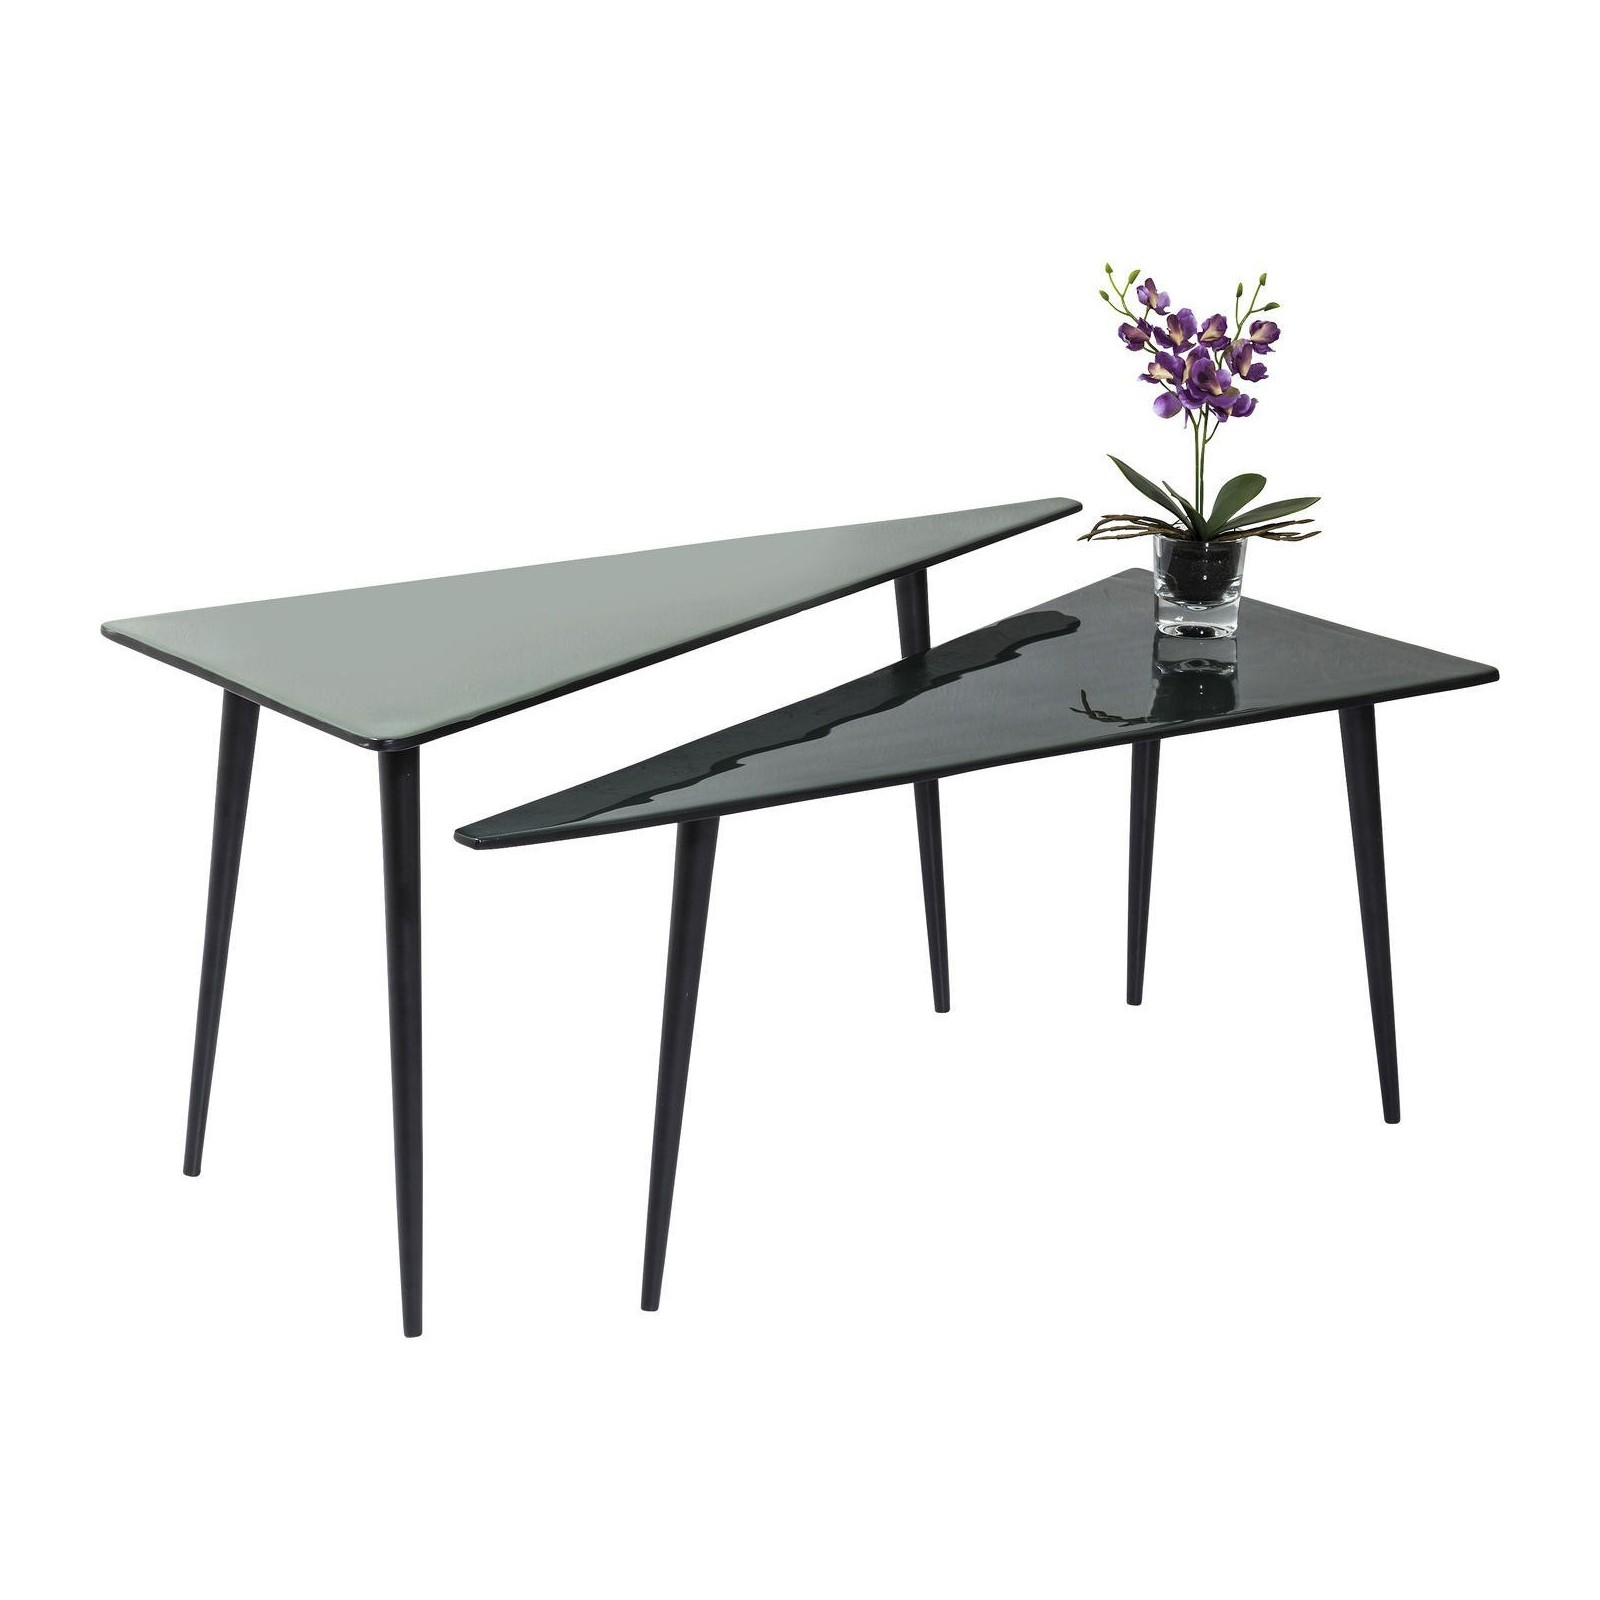 einzigartig table basse triangulaire id es de conception. Black Bedroom Furniture Sets. Home Design Ideas